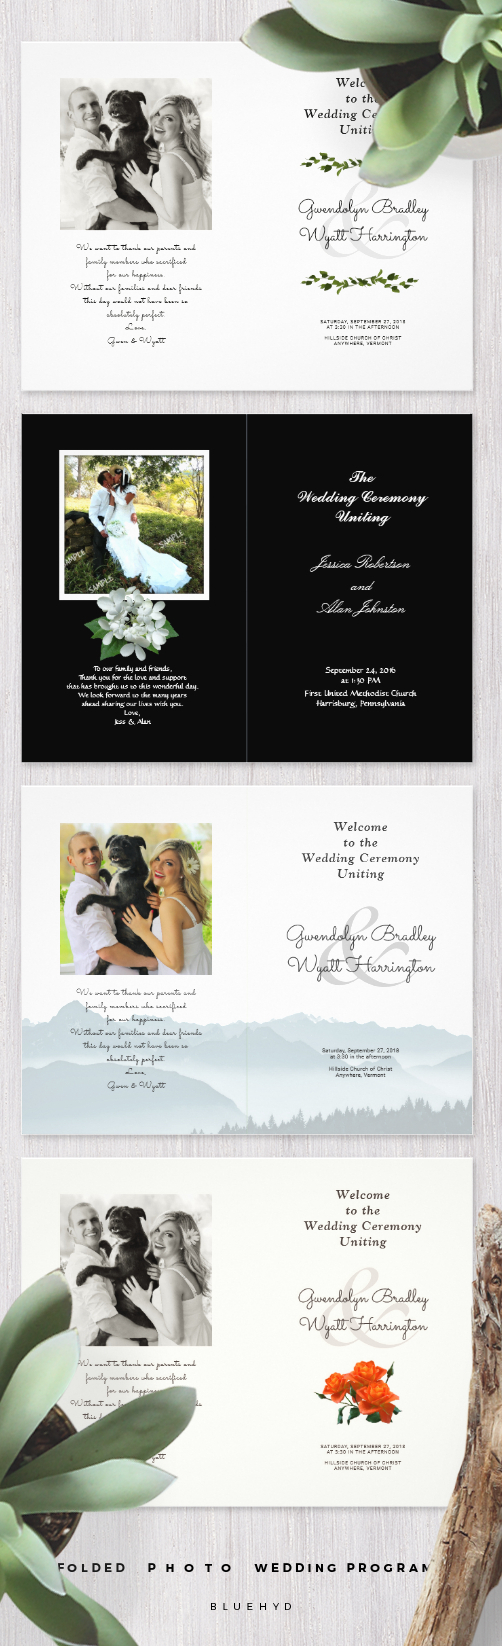 how to make your own printable wedding invitations%0A Folded wedding program templates  with photo added to the back page   Customize   pages